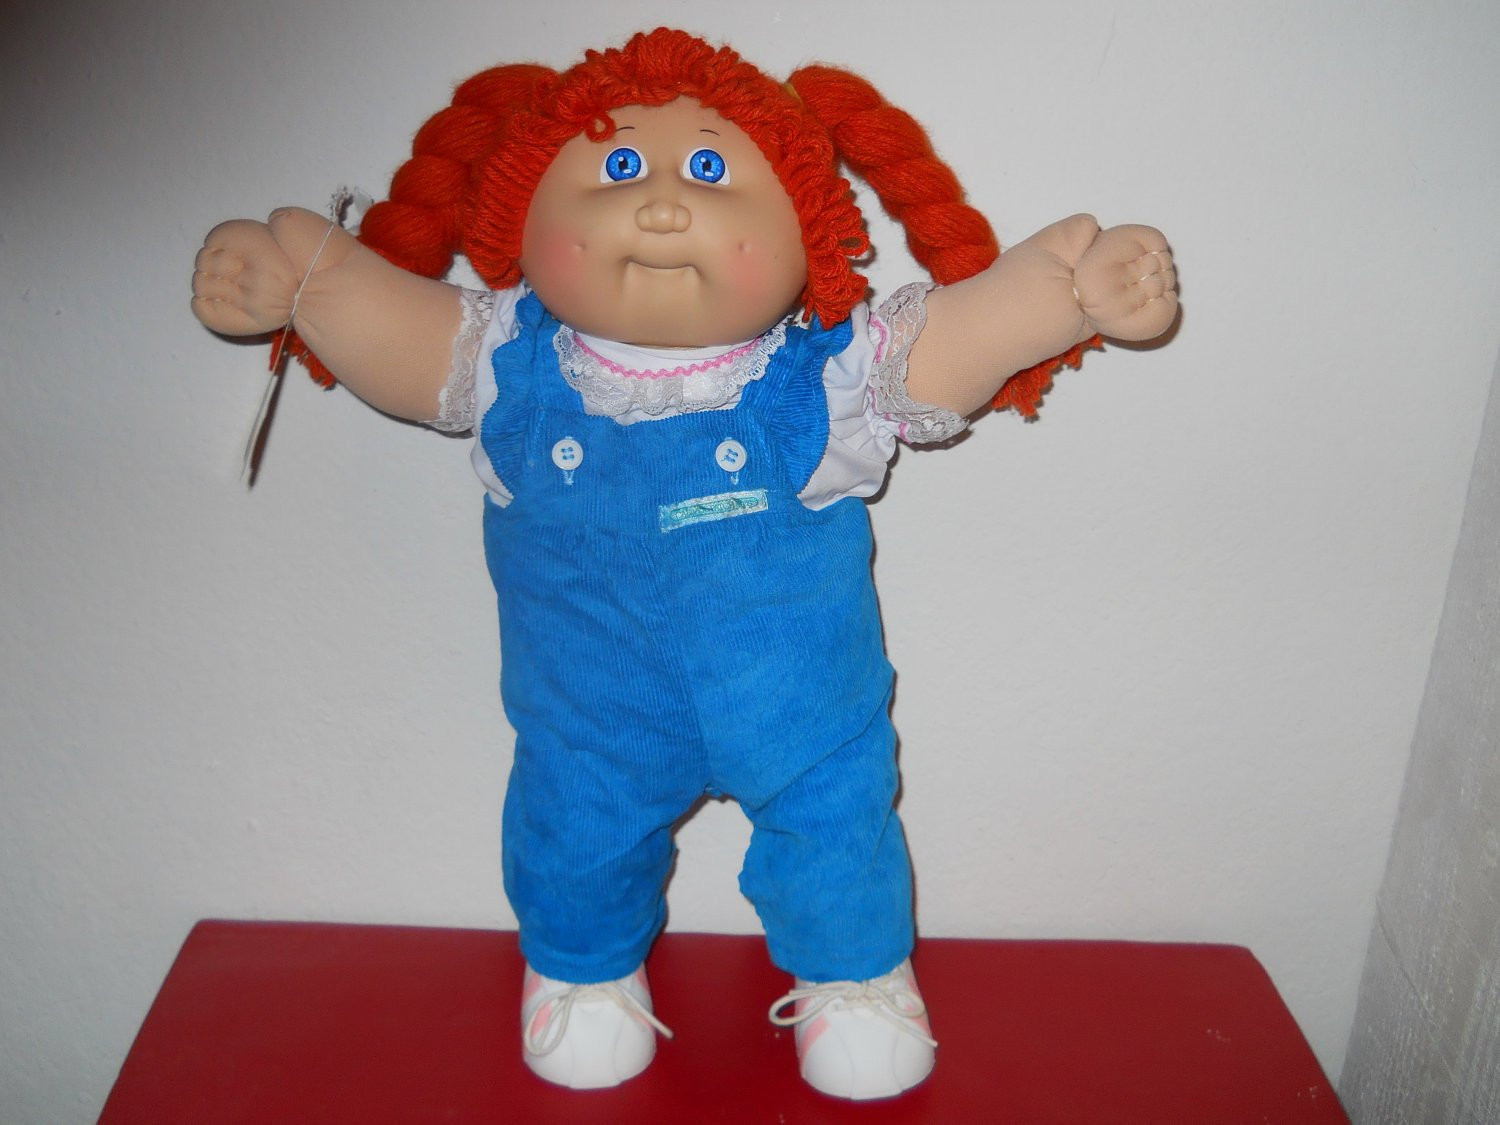 Vintage Cabbage Patch Dolls Best Of Vintage 1983 Cabbage Patch Doll Diane Olympia Of Amazing 43 Models Vintage Cabbage Patch Dolls